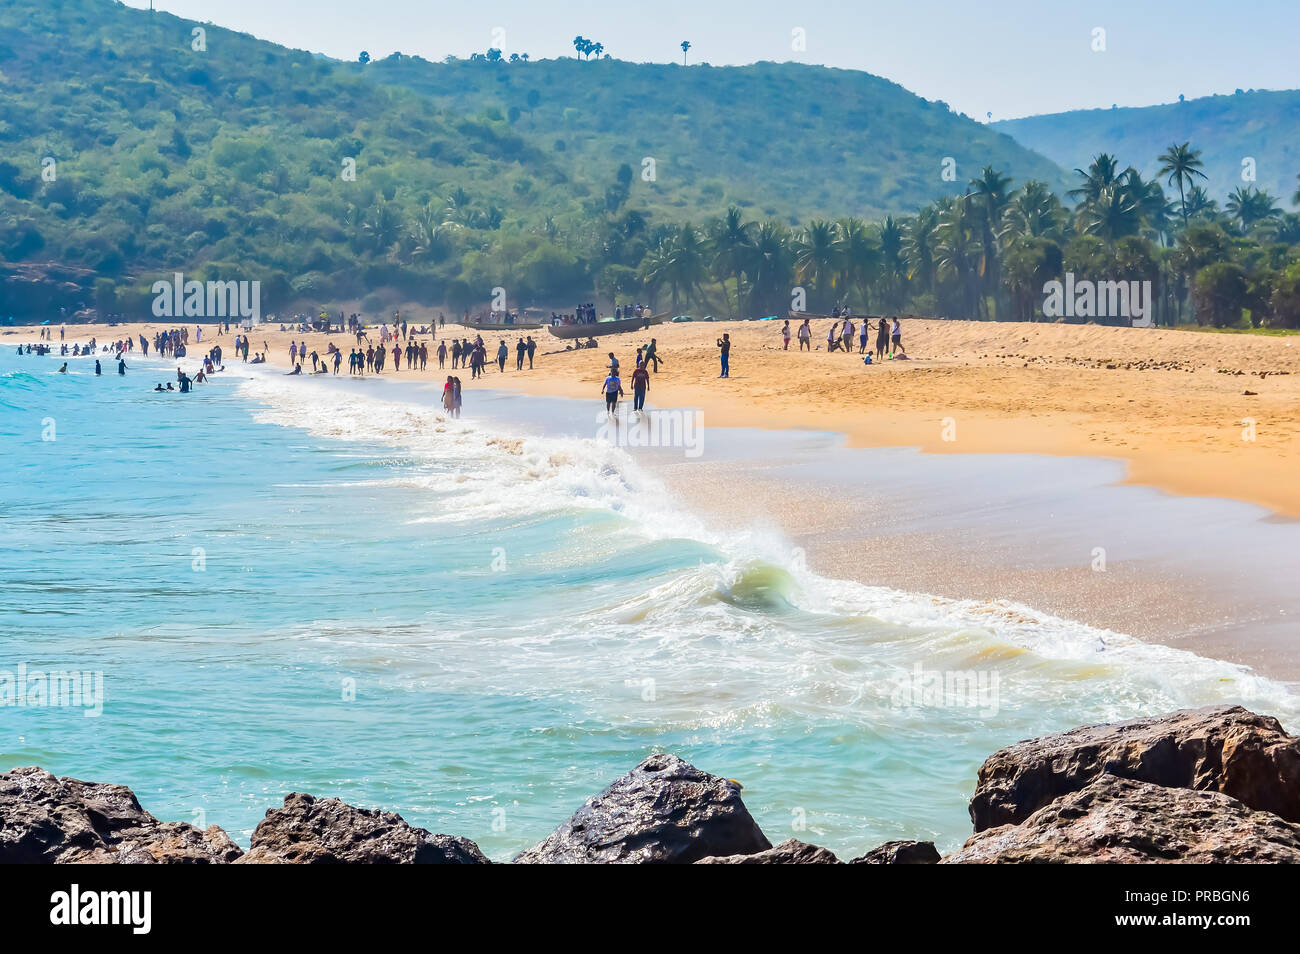 photograph of goa sea beach taken in christmas holiday during new year celebration in landscape style useful for background screen saver e cards websi